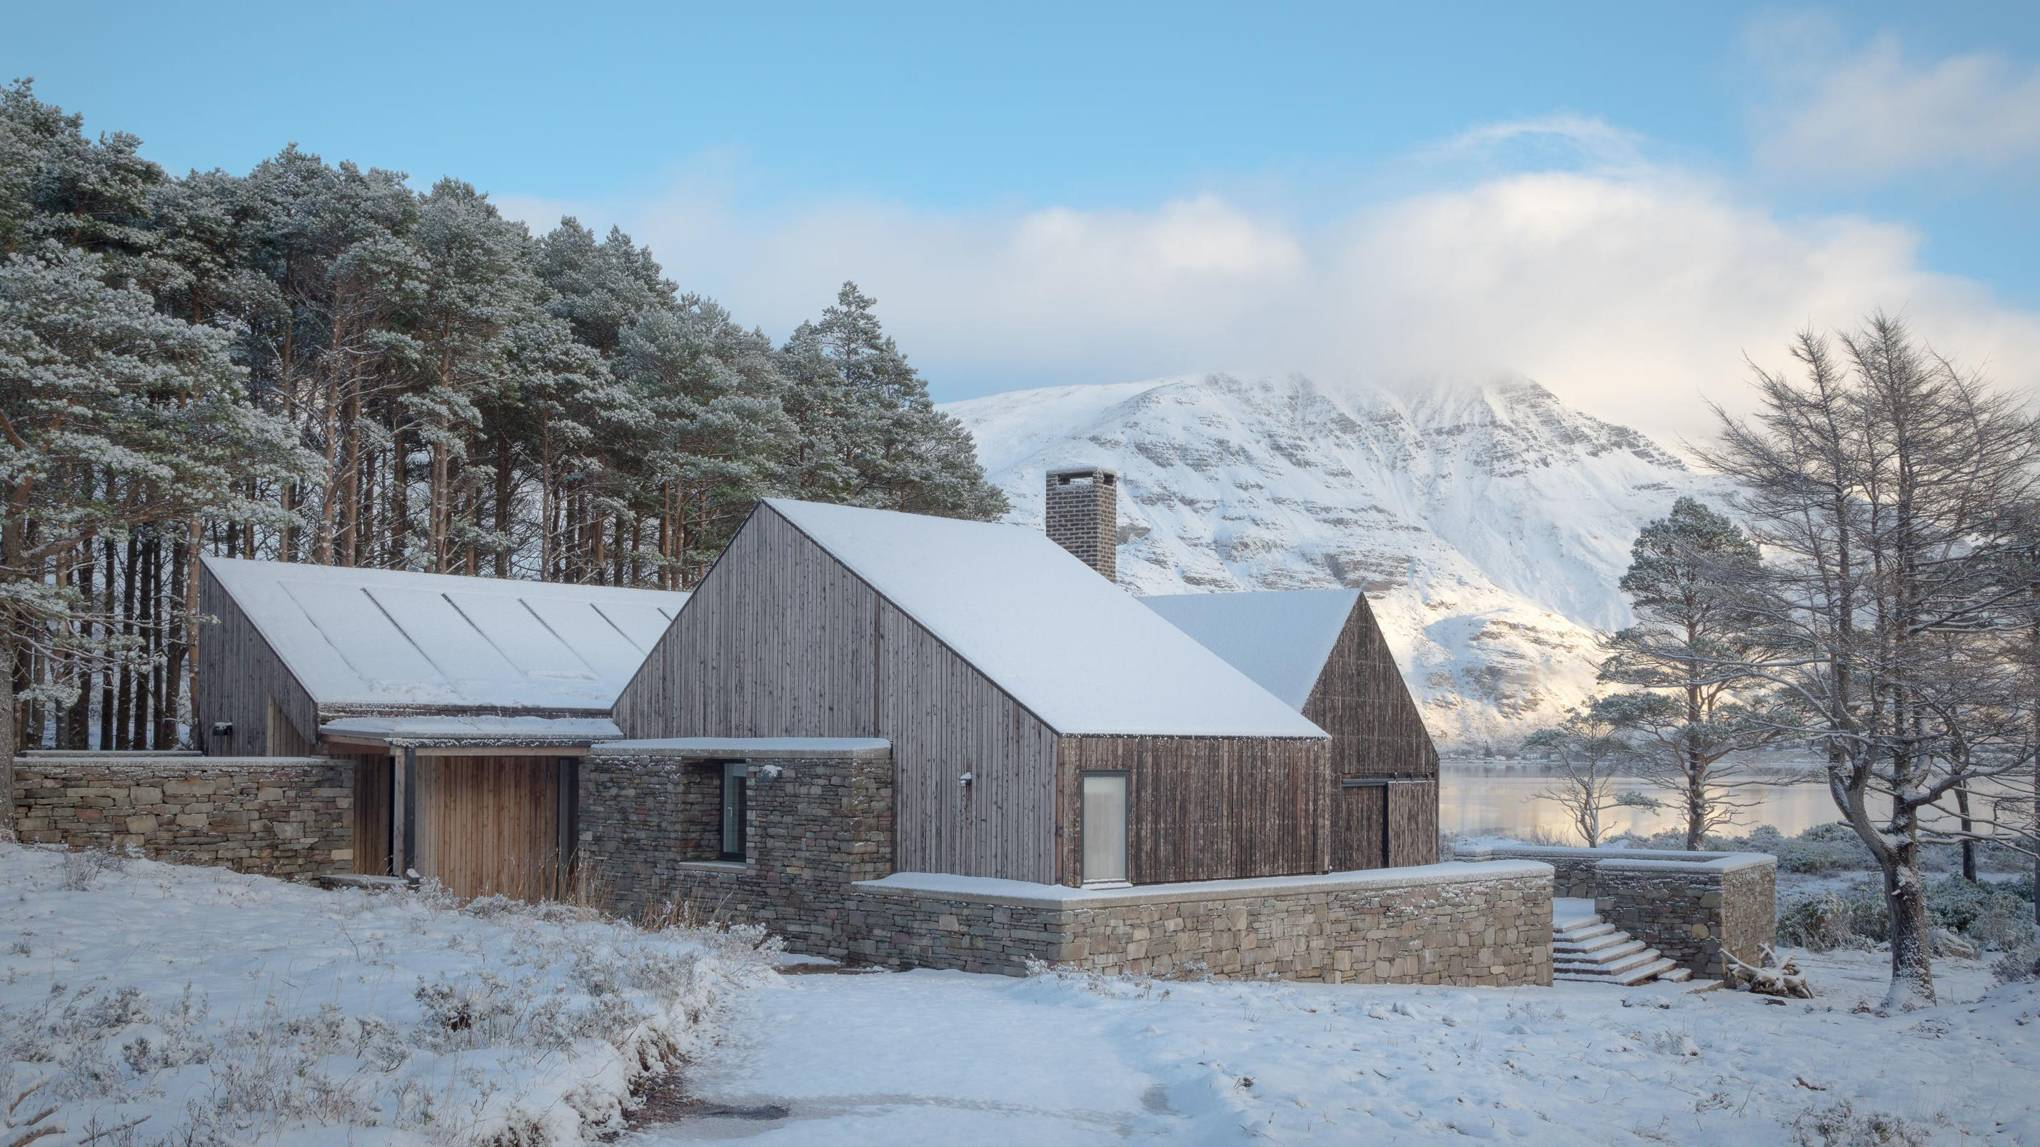 The 2018 RIBA House of the Year is a dreamy off-grid cottage on the edge of a loch